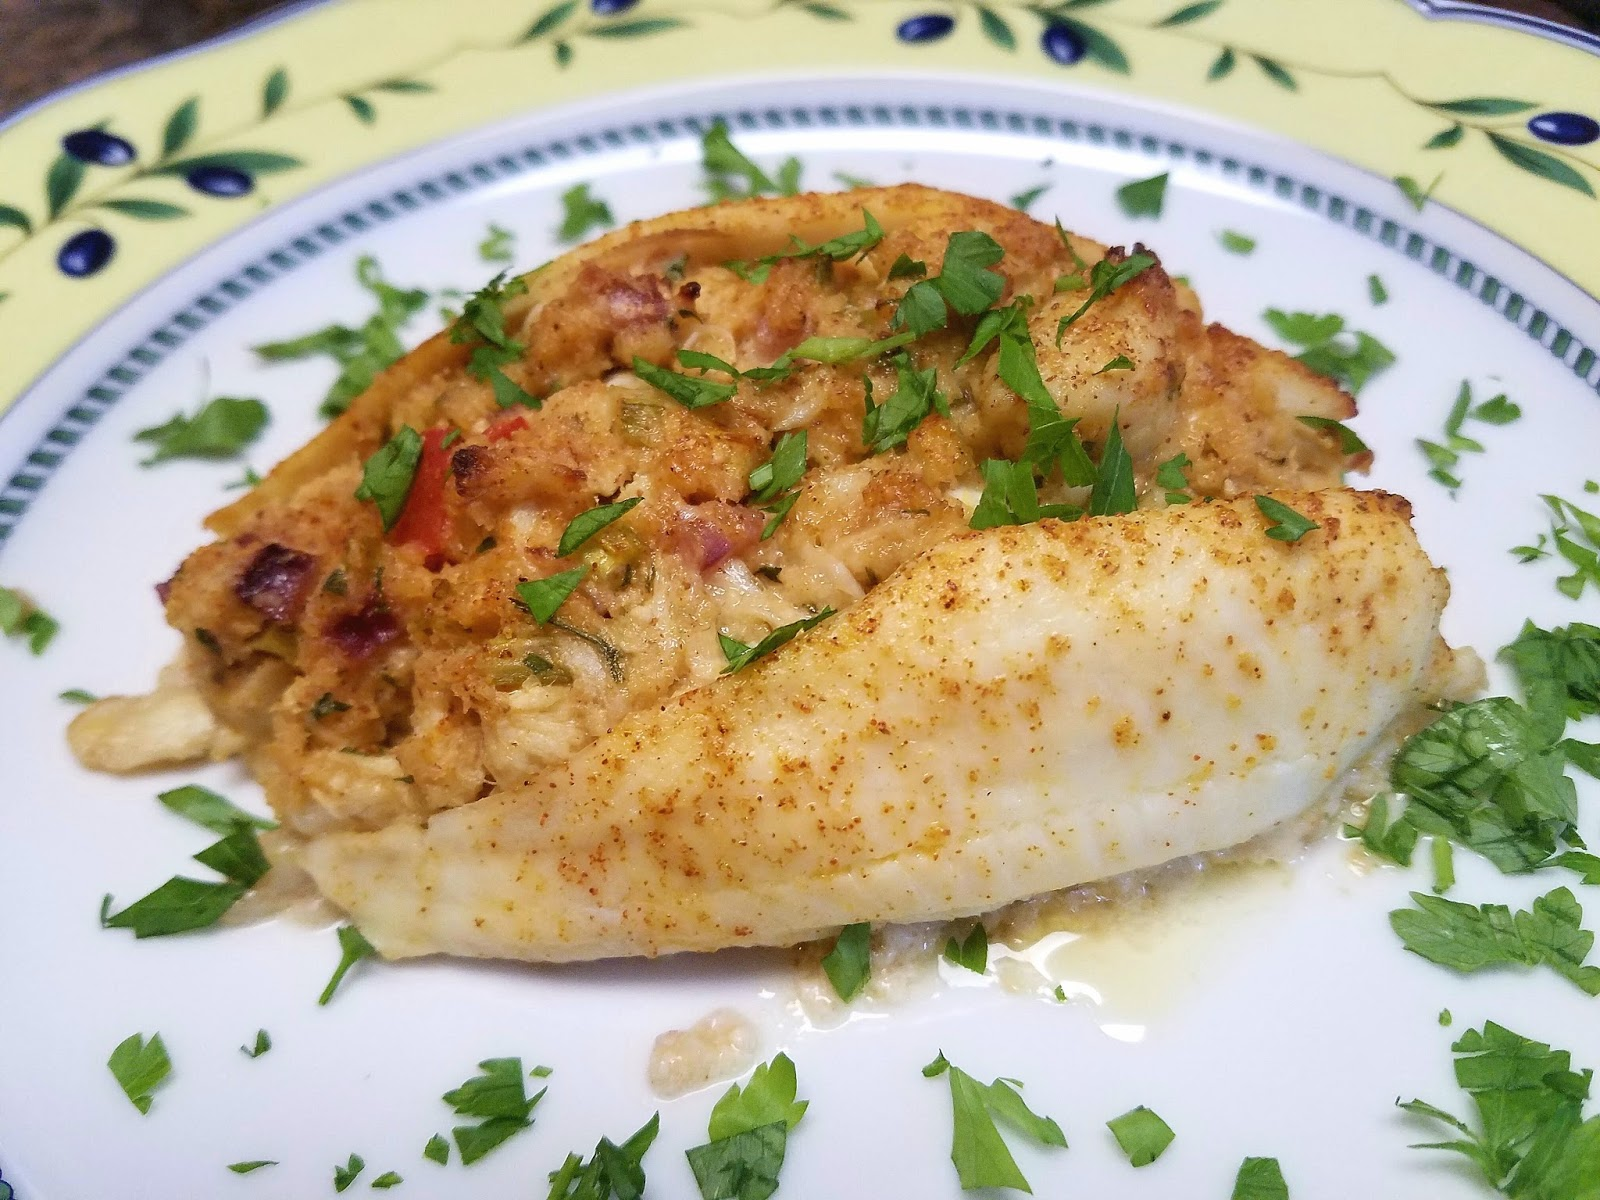 Cooking with Julian: Baked Crab-Stuffed Flounder